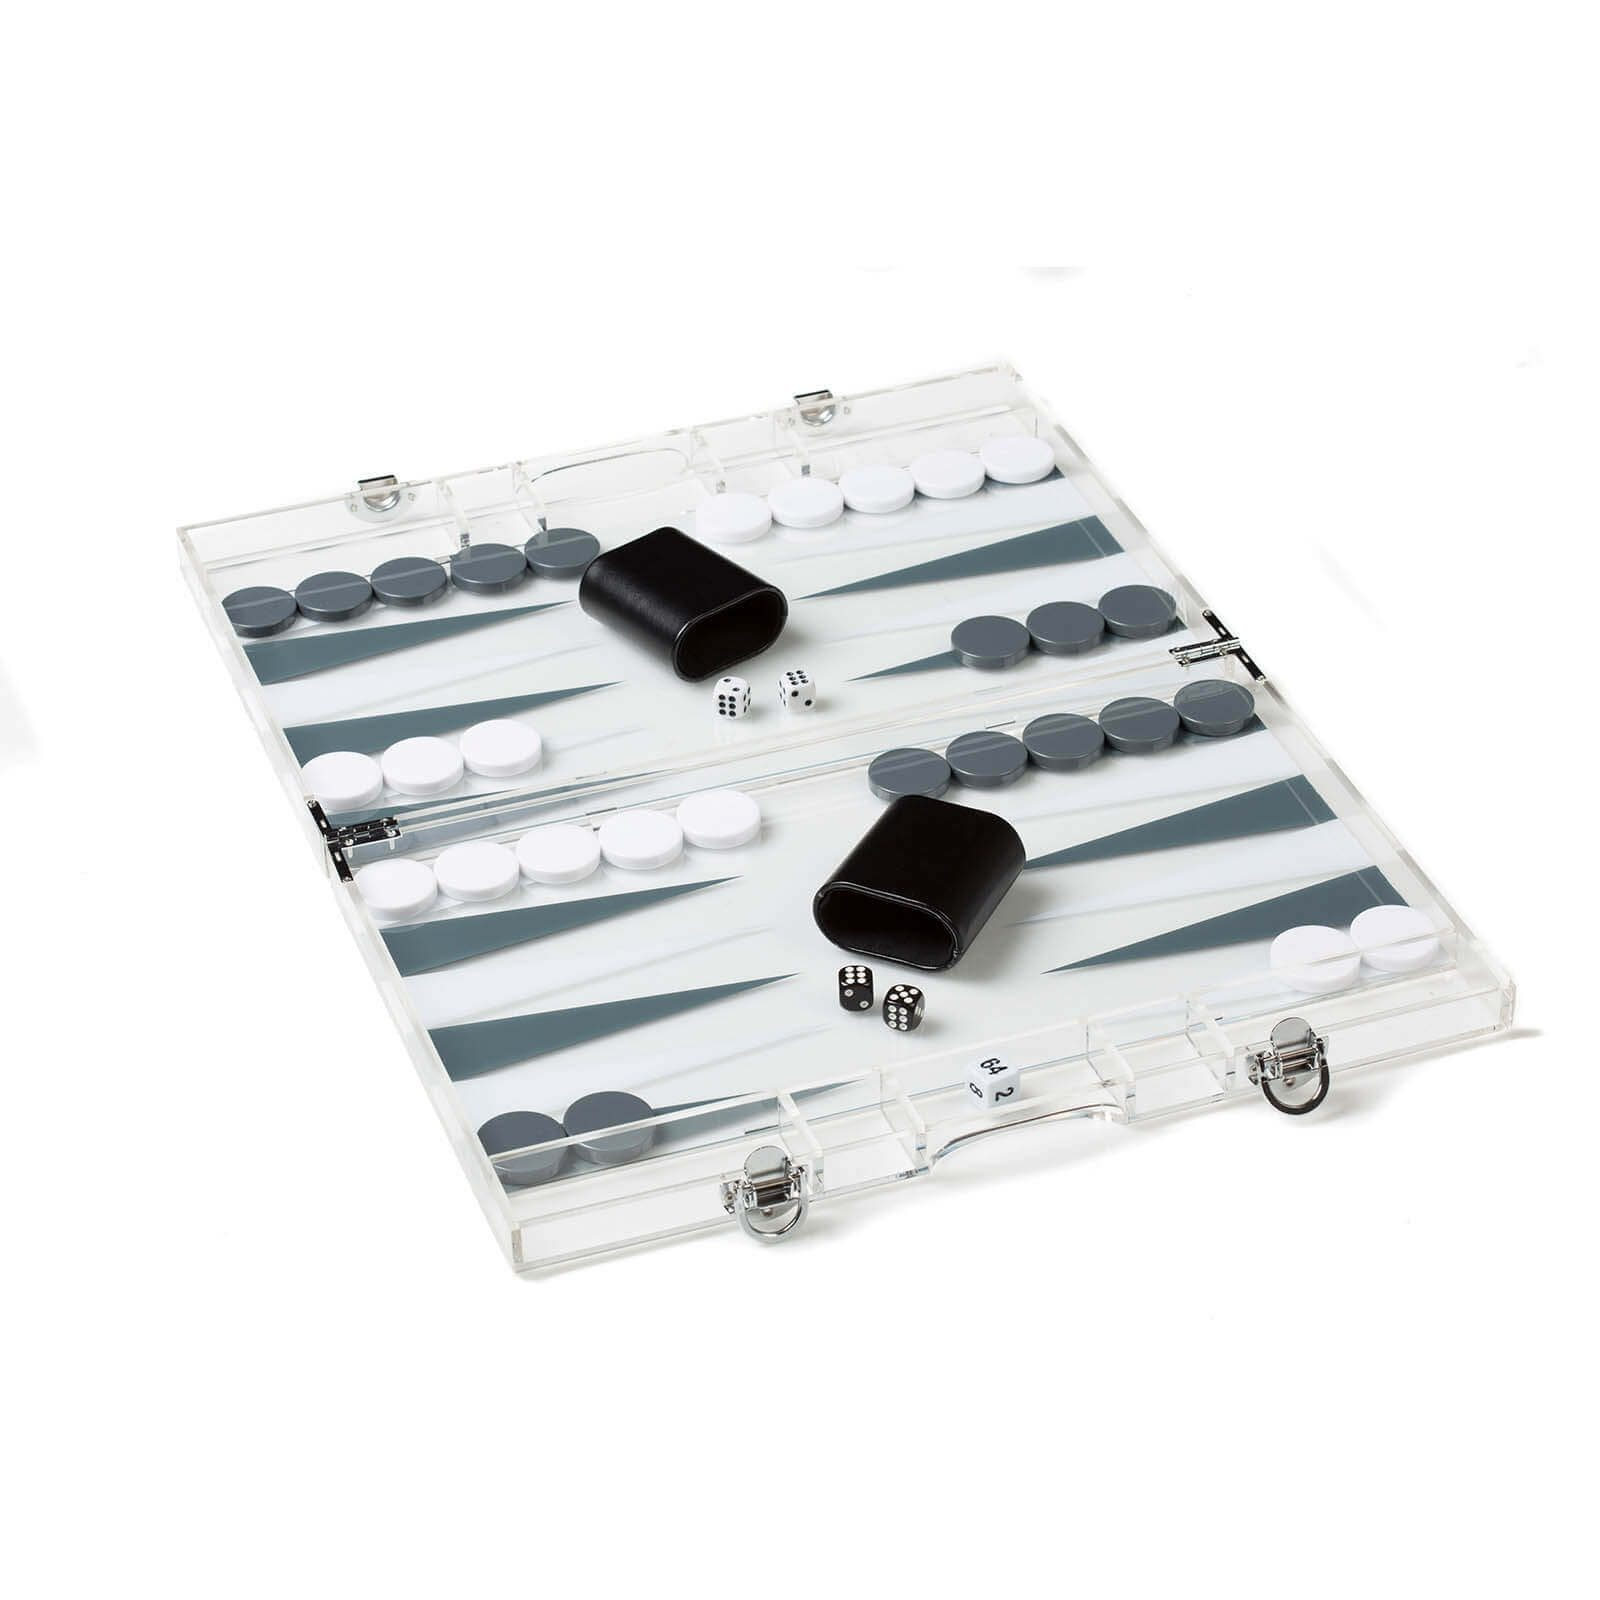 Acrylic Backgammon Set in grey and Open